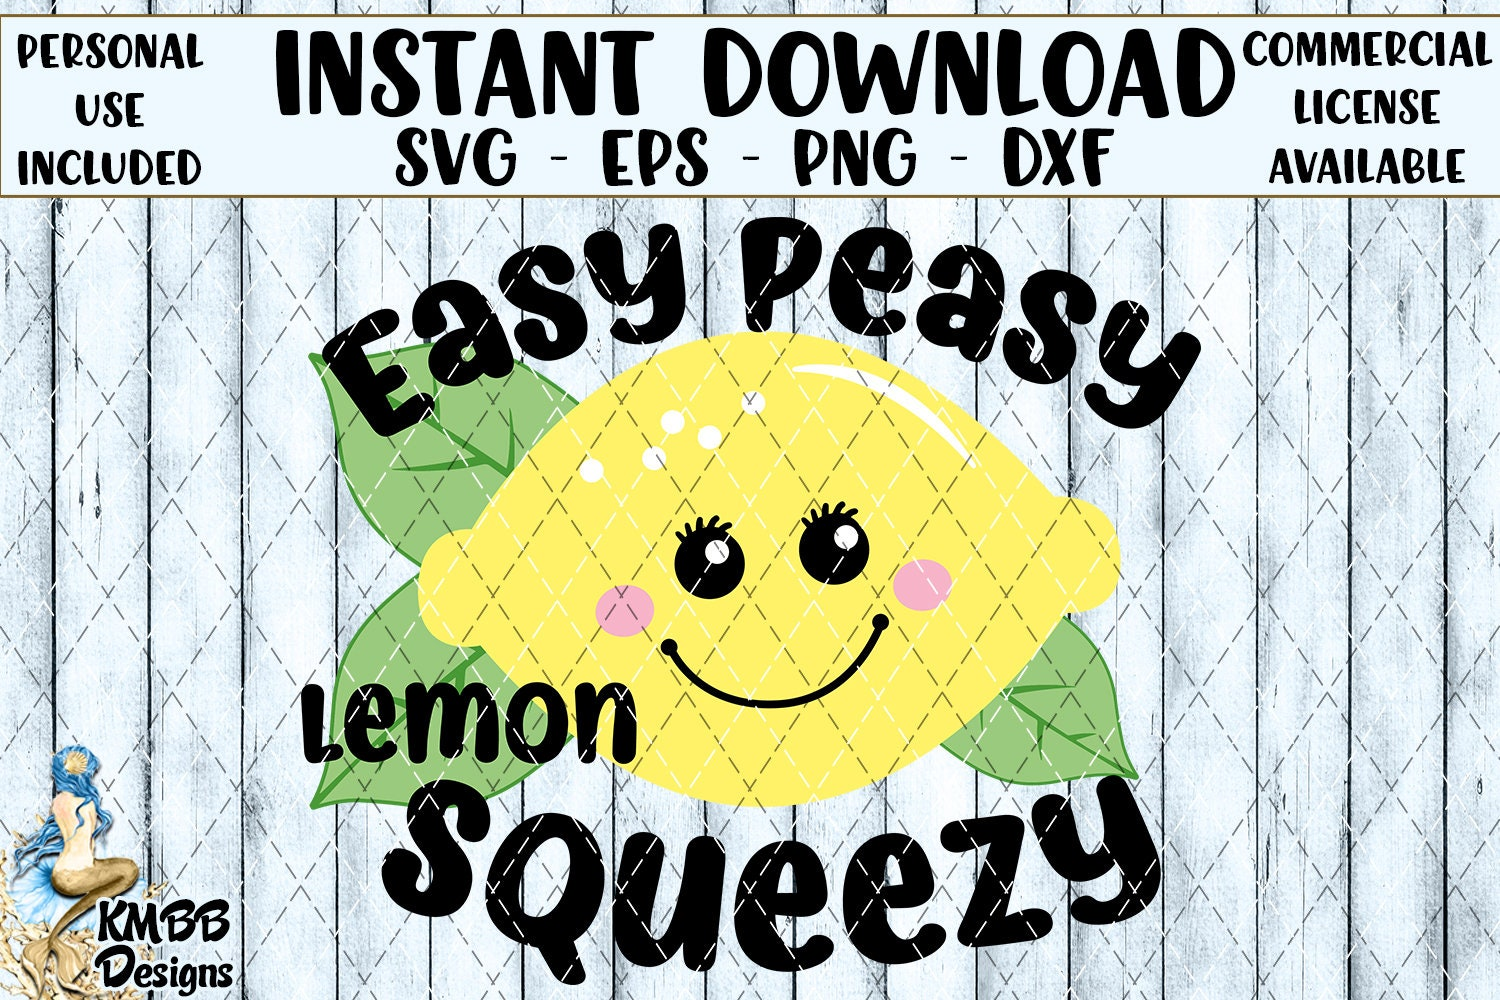 Instant Download Personal Use Easy Peasy Lemon Squeezy | Etsy